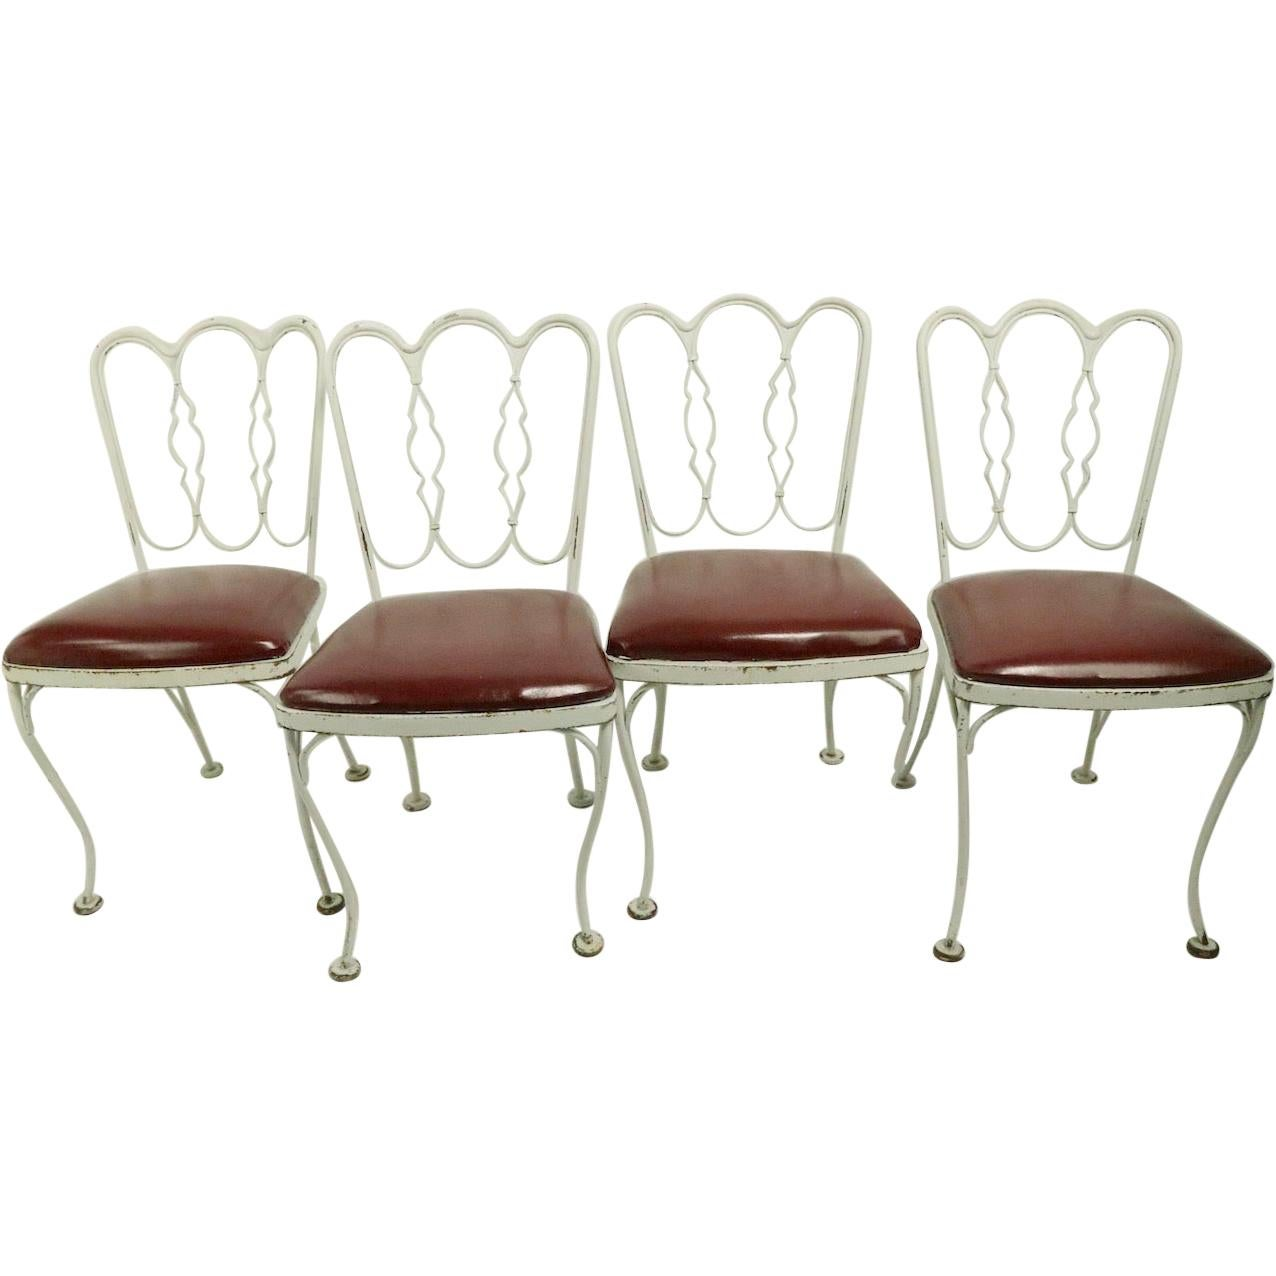 Set of 4 Wrought Iron Dining Chairs by Lee Woodard